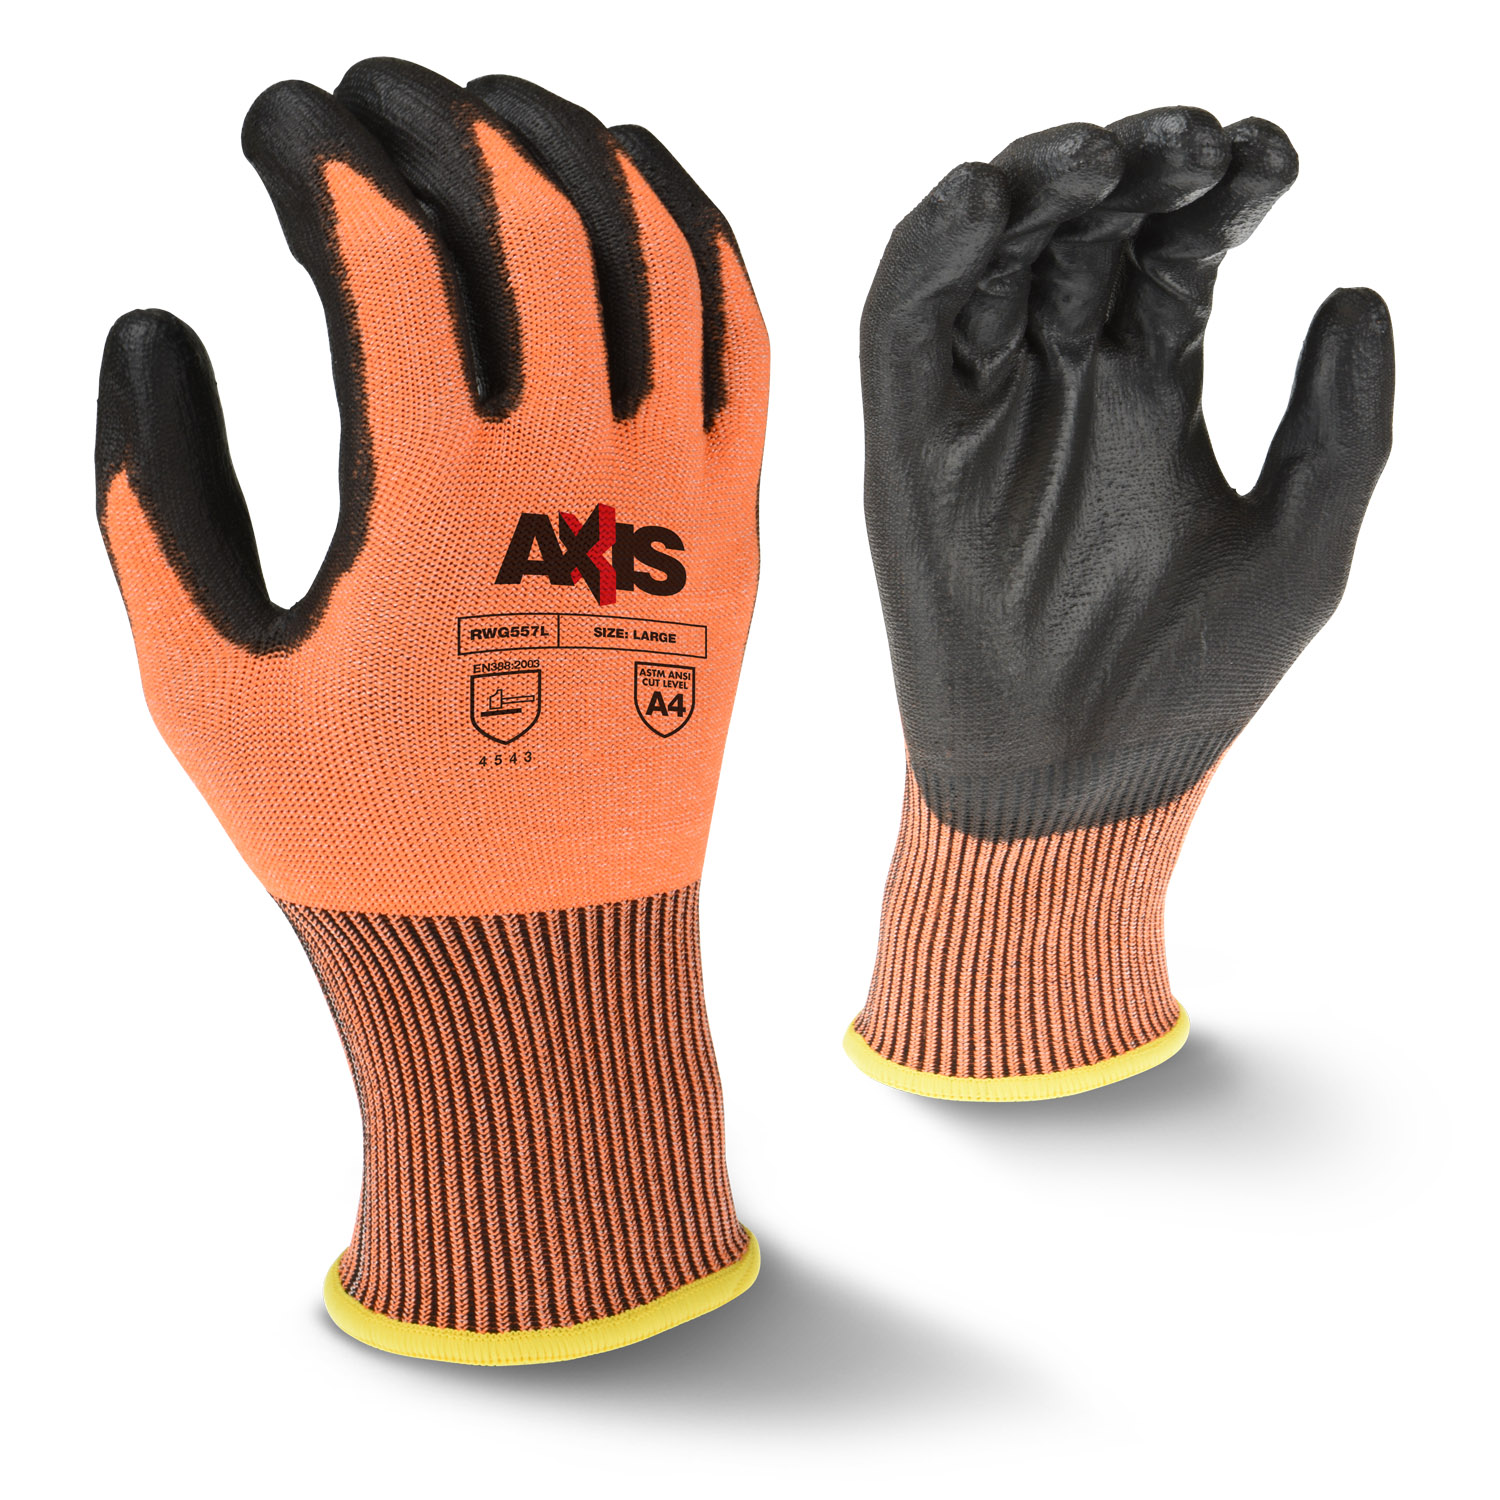 Radians RWG557 AXIS™ Cut Protection Level A4 High Tenacity Nylon Glove